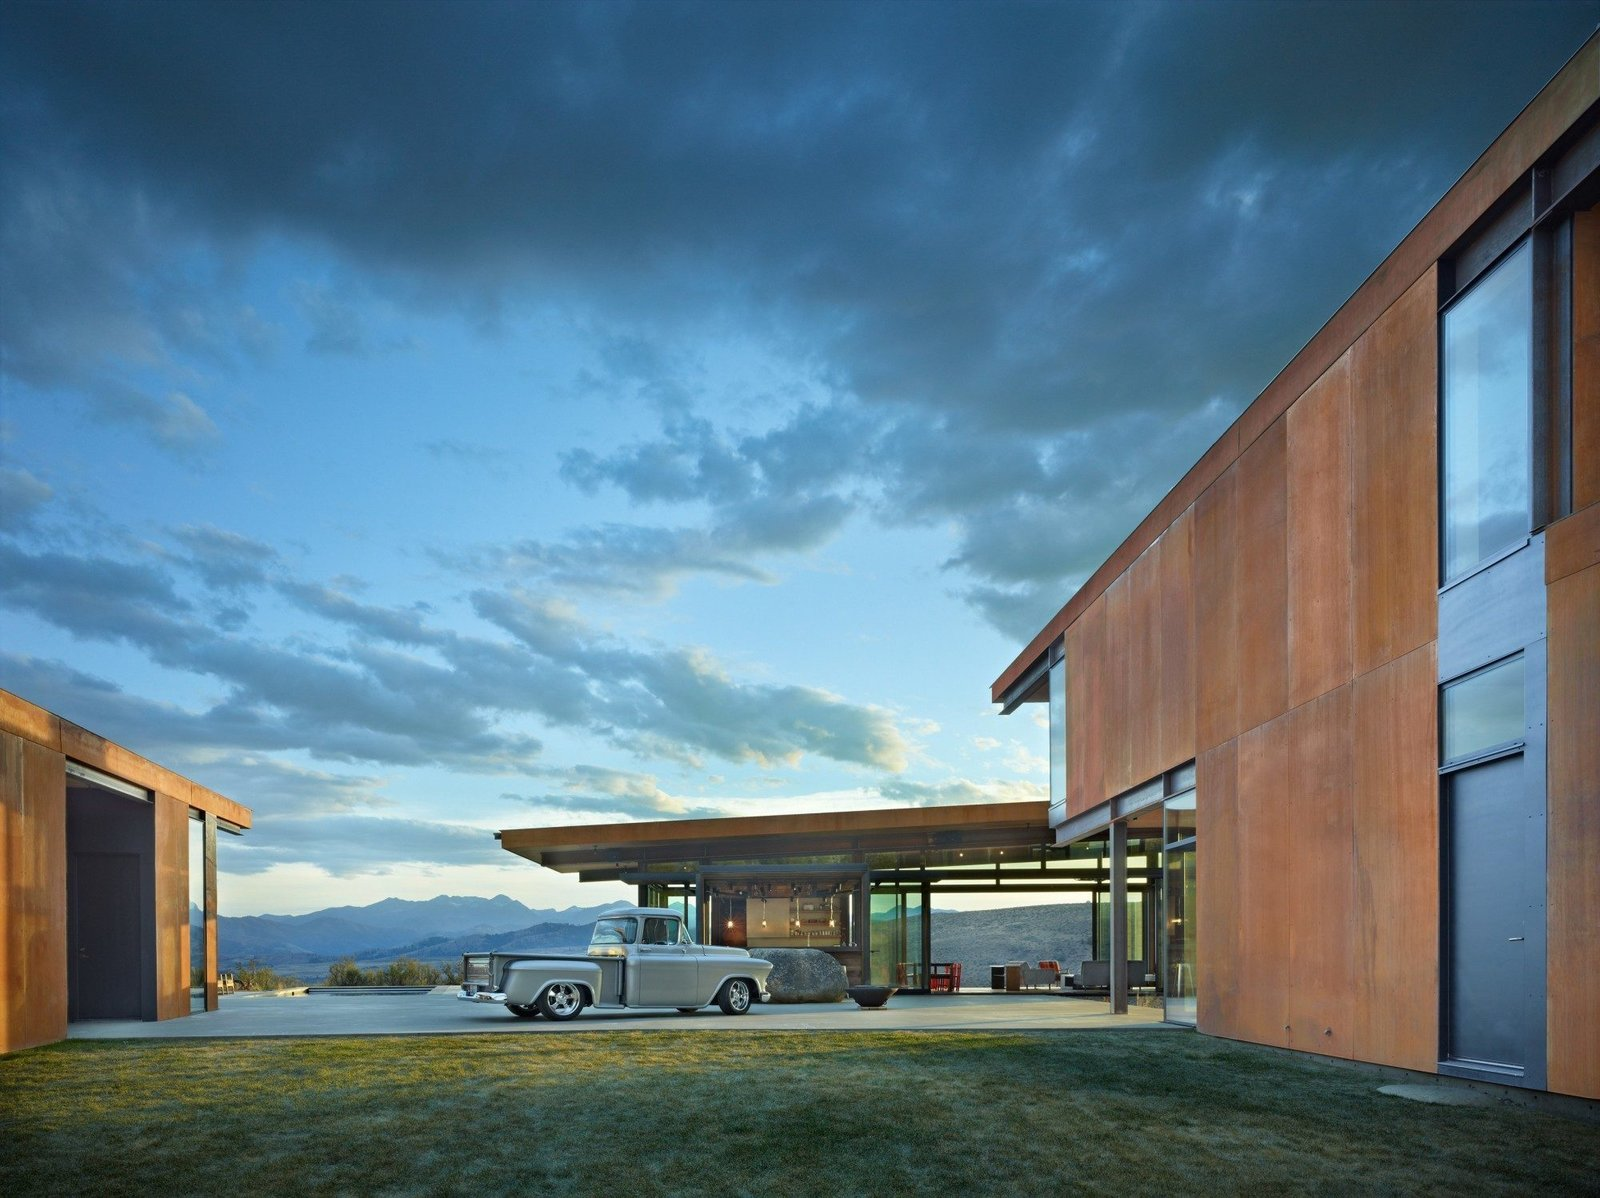 Set in Washington's remote Methow Valley, the Studhorse House rests on a 20-acre site that is nestled in the northern portion of the 60-mile long glacial valley. The buildings are arranged to frame carefully composed views of the surrounding Studhorse Ridge and Pearrygin Lake. Design Principal, Tom Kundig.